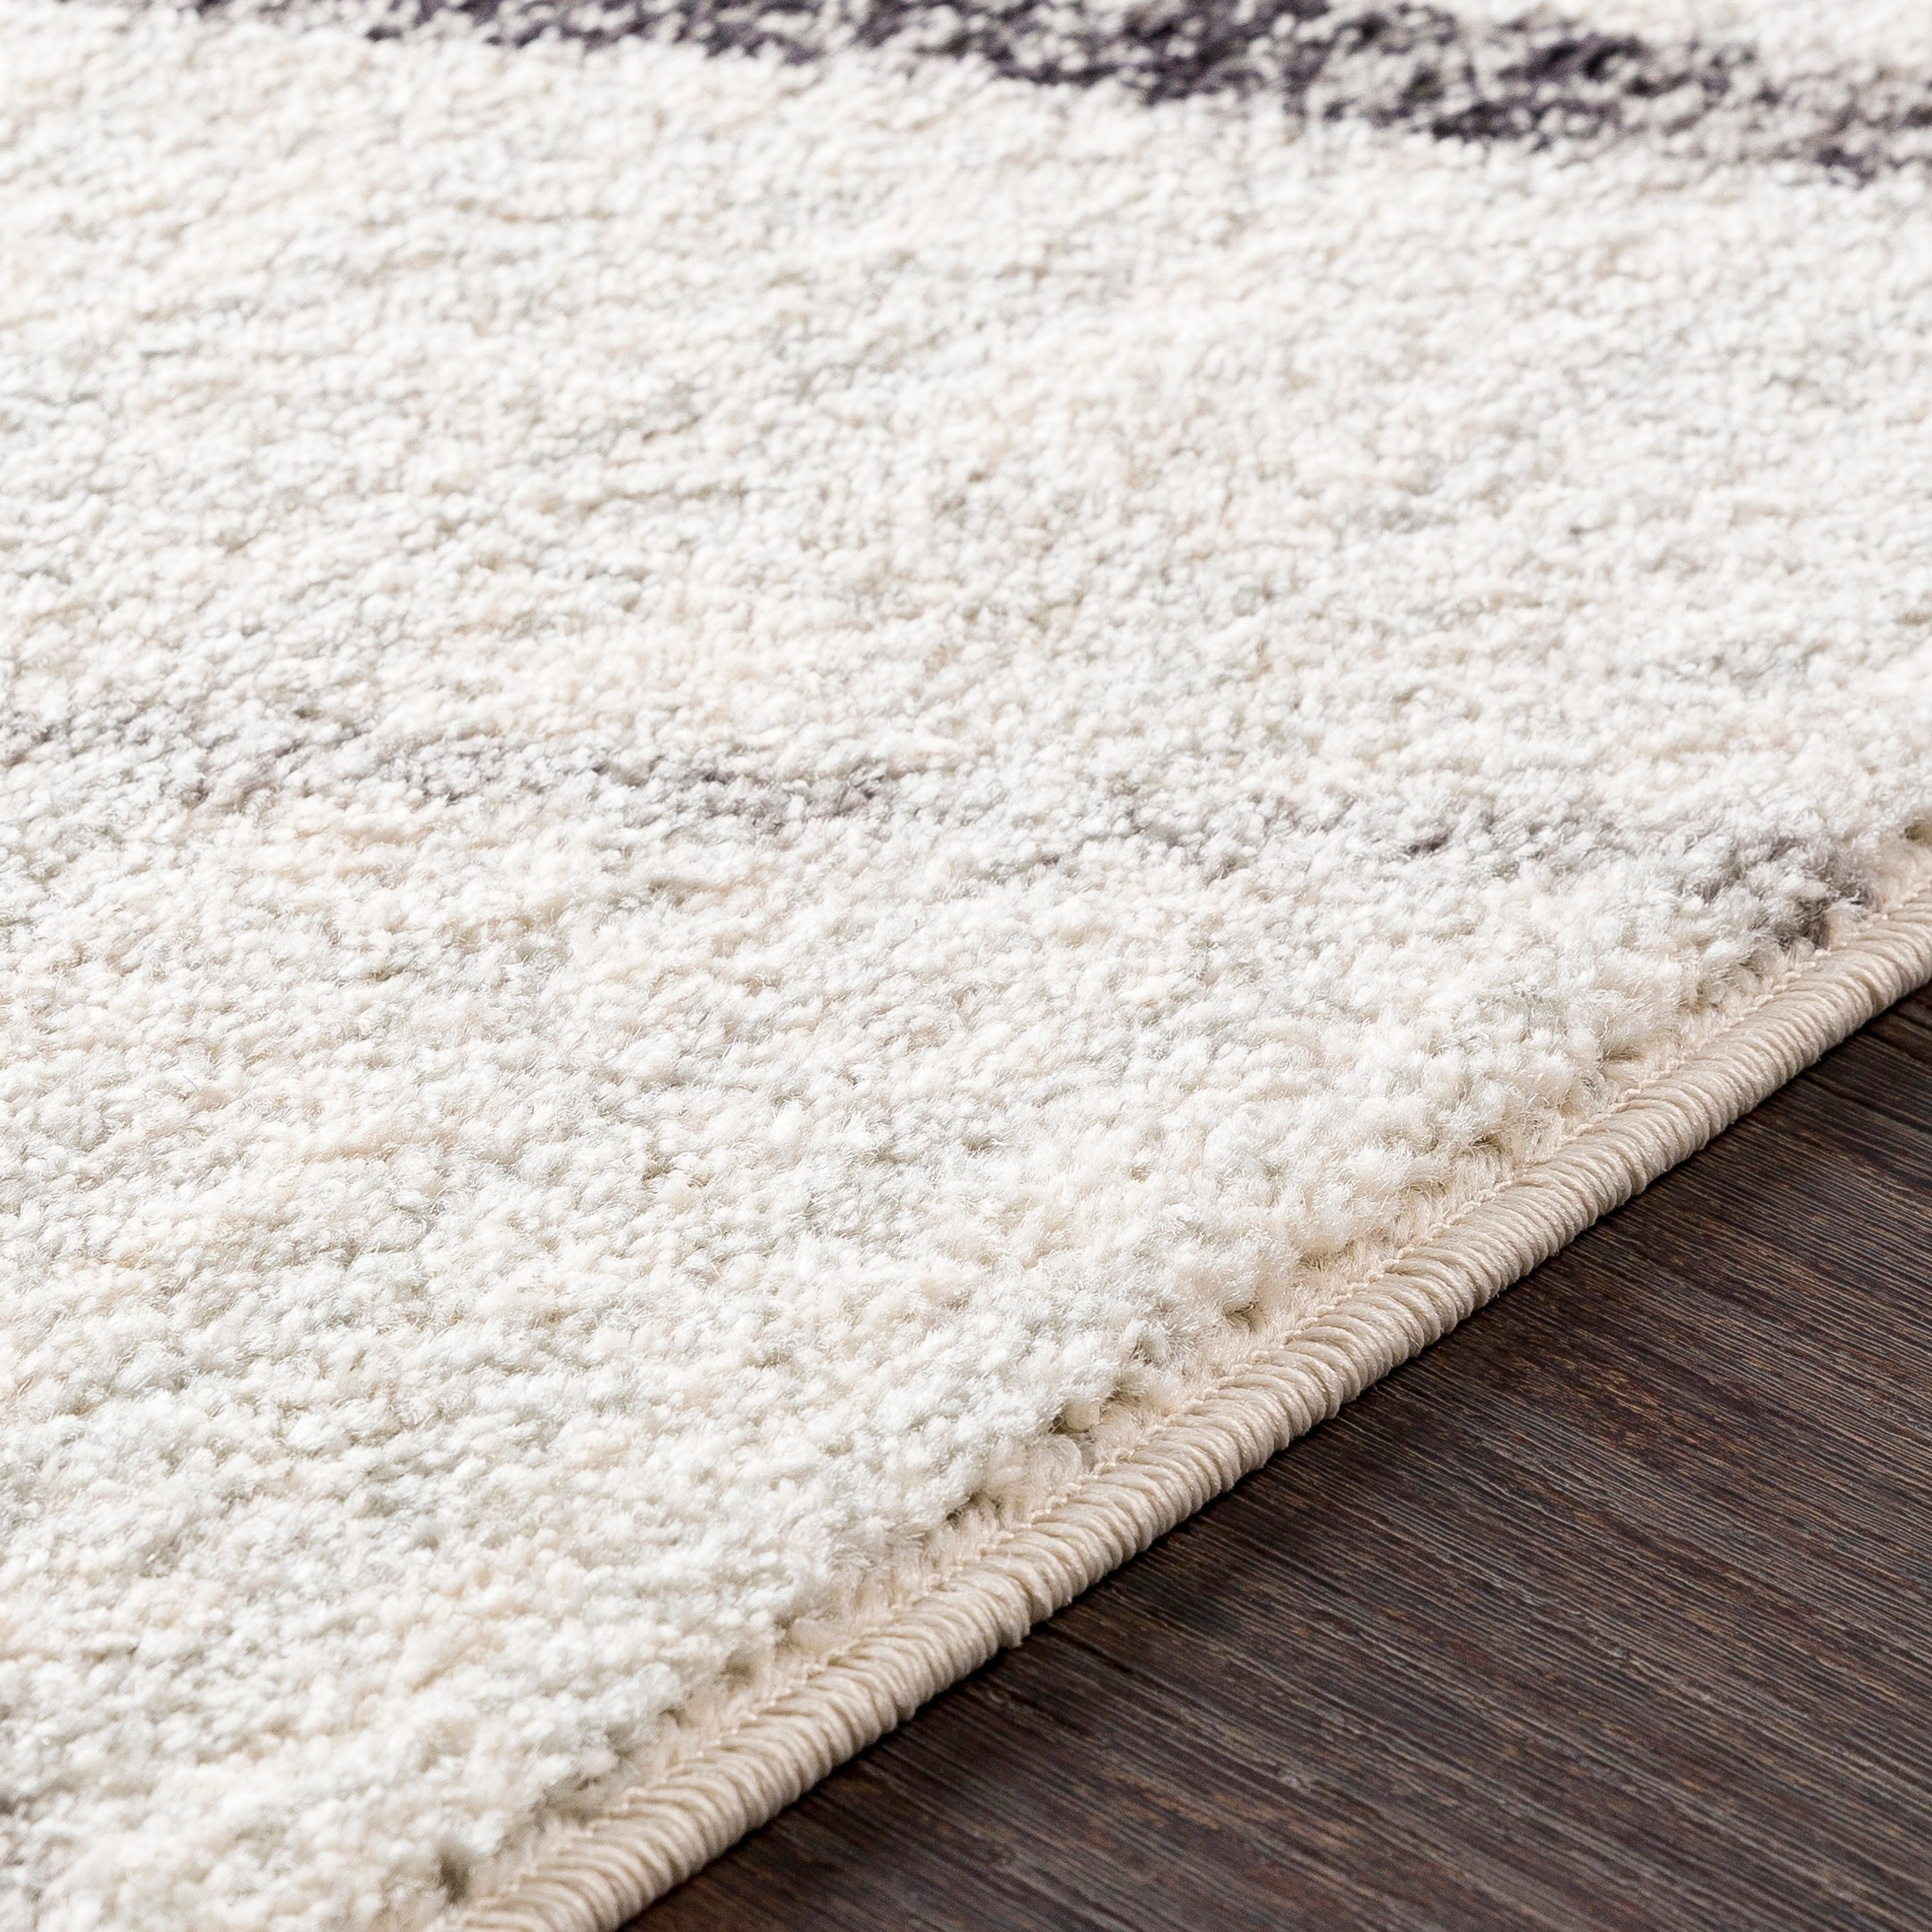 Mellie Gray Contemporary Lines Area Rug 5 3 X 7 6 Overstock 21278244